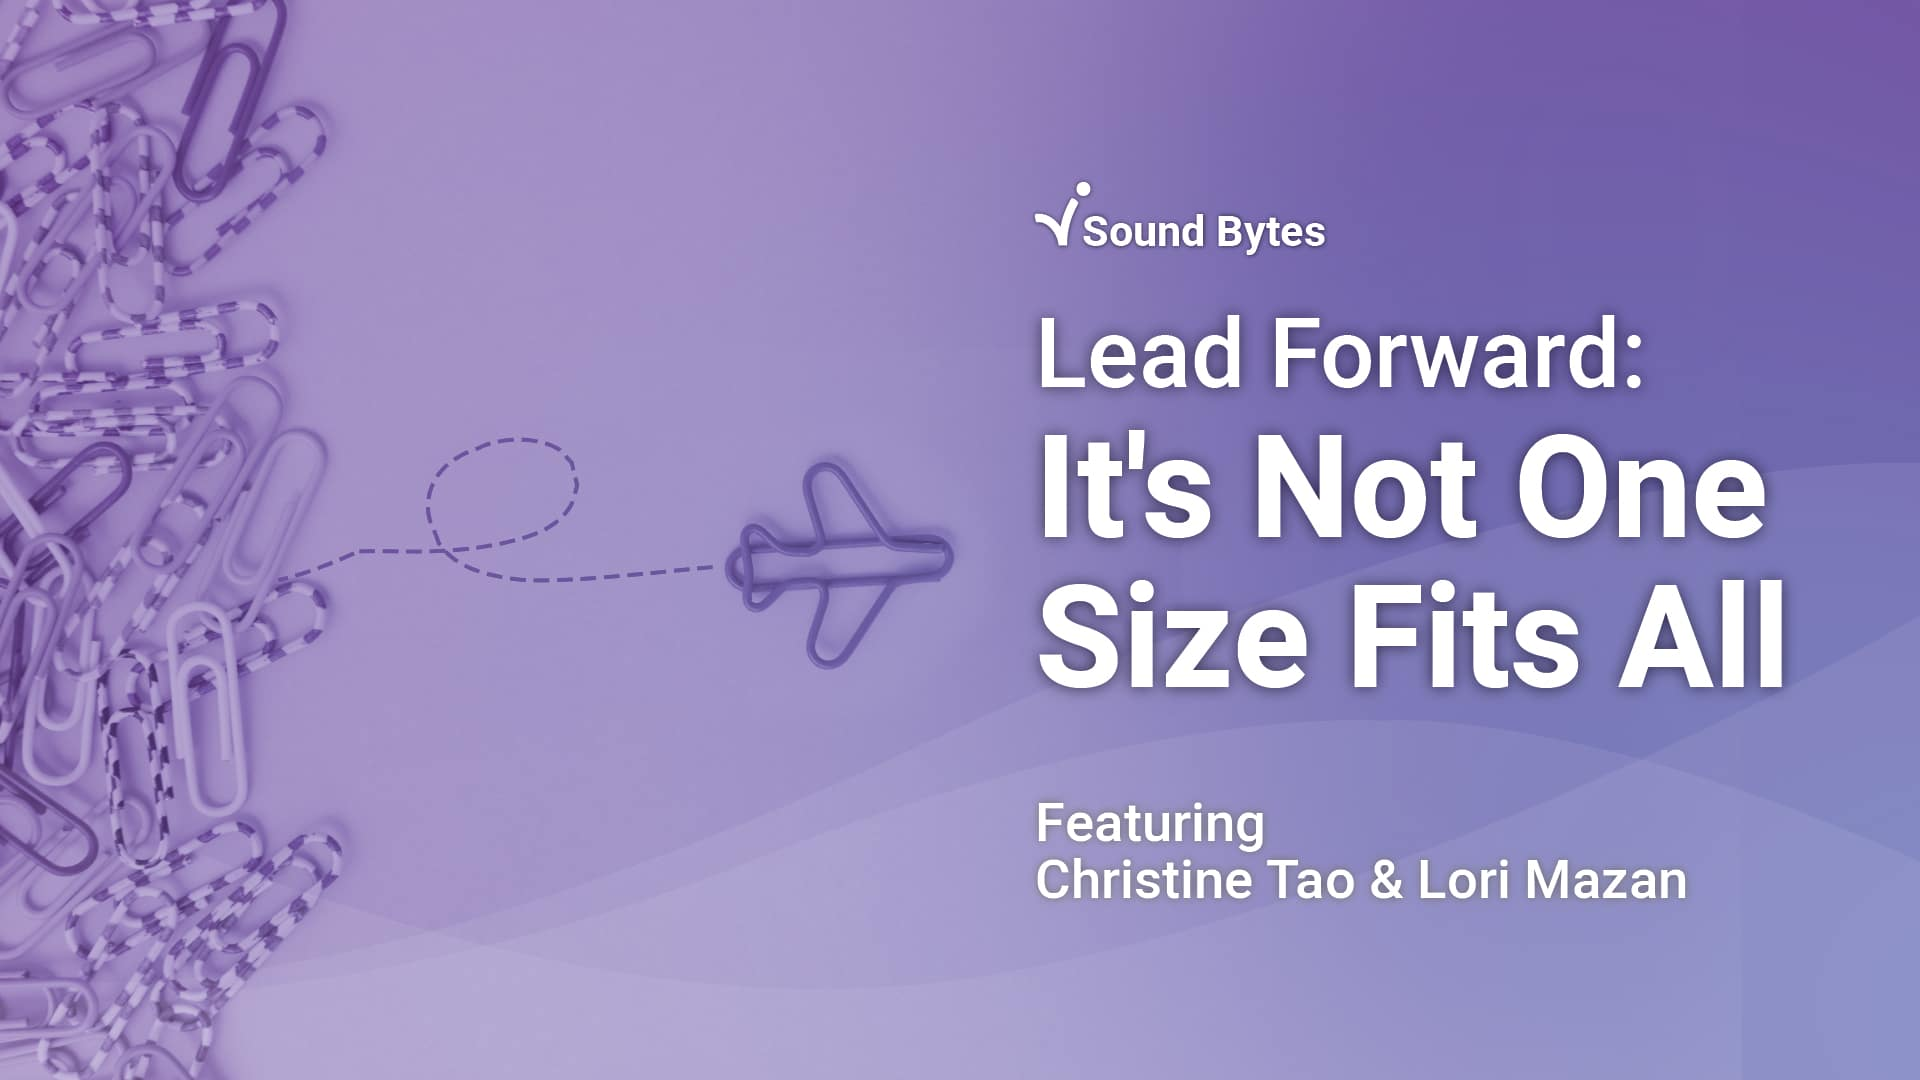 Lead Forward: It's Not One Size Fits All